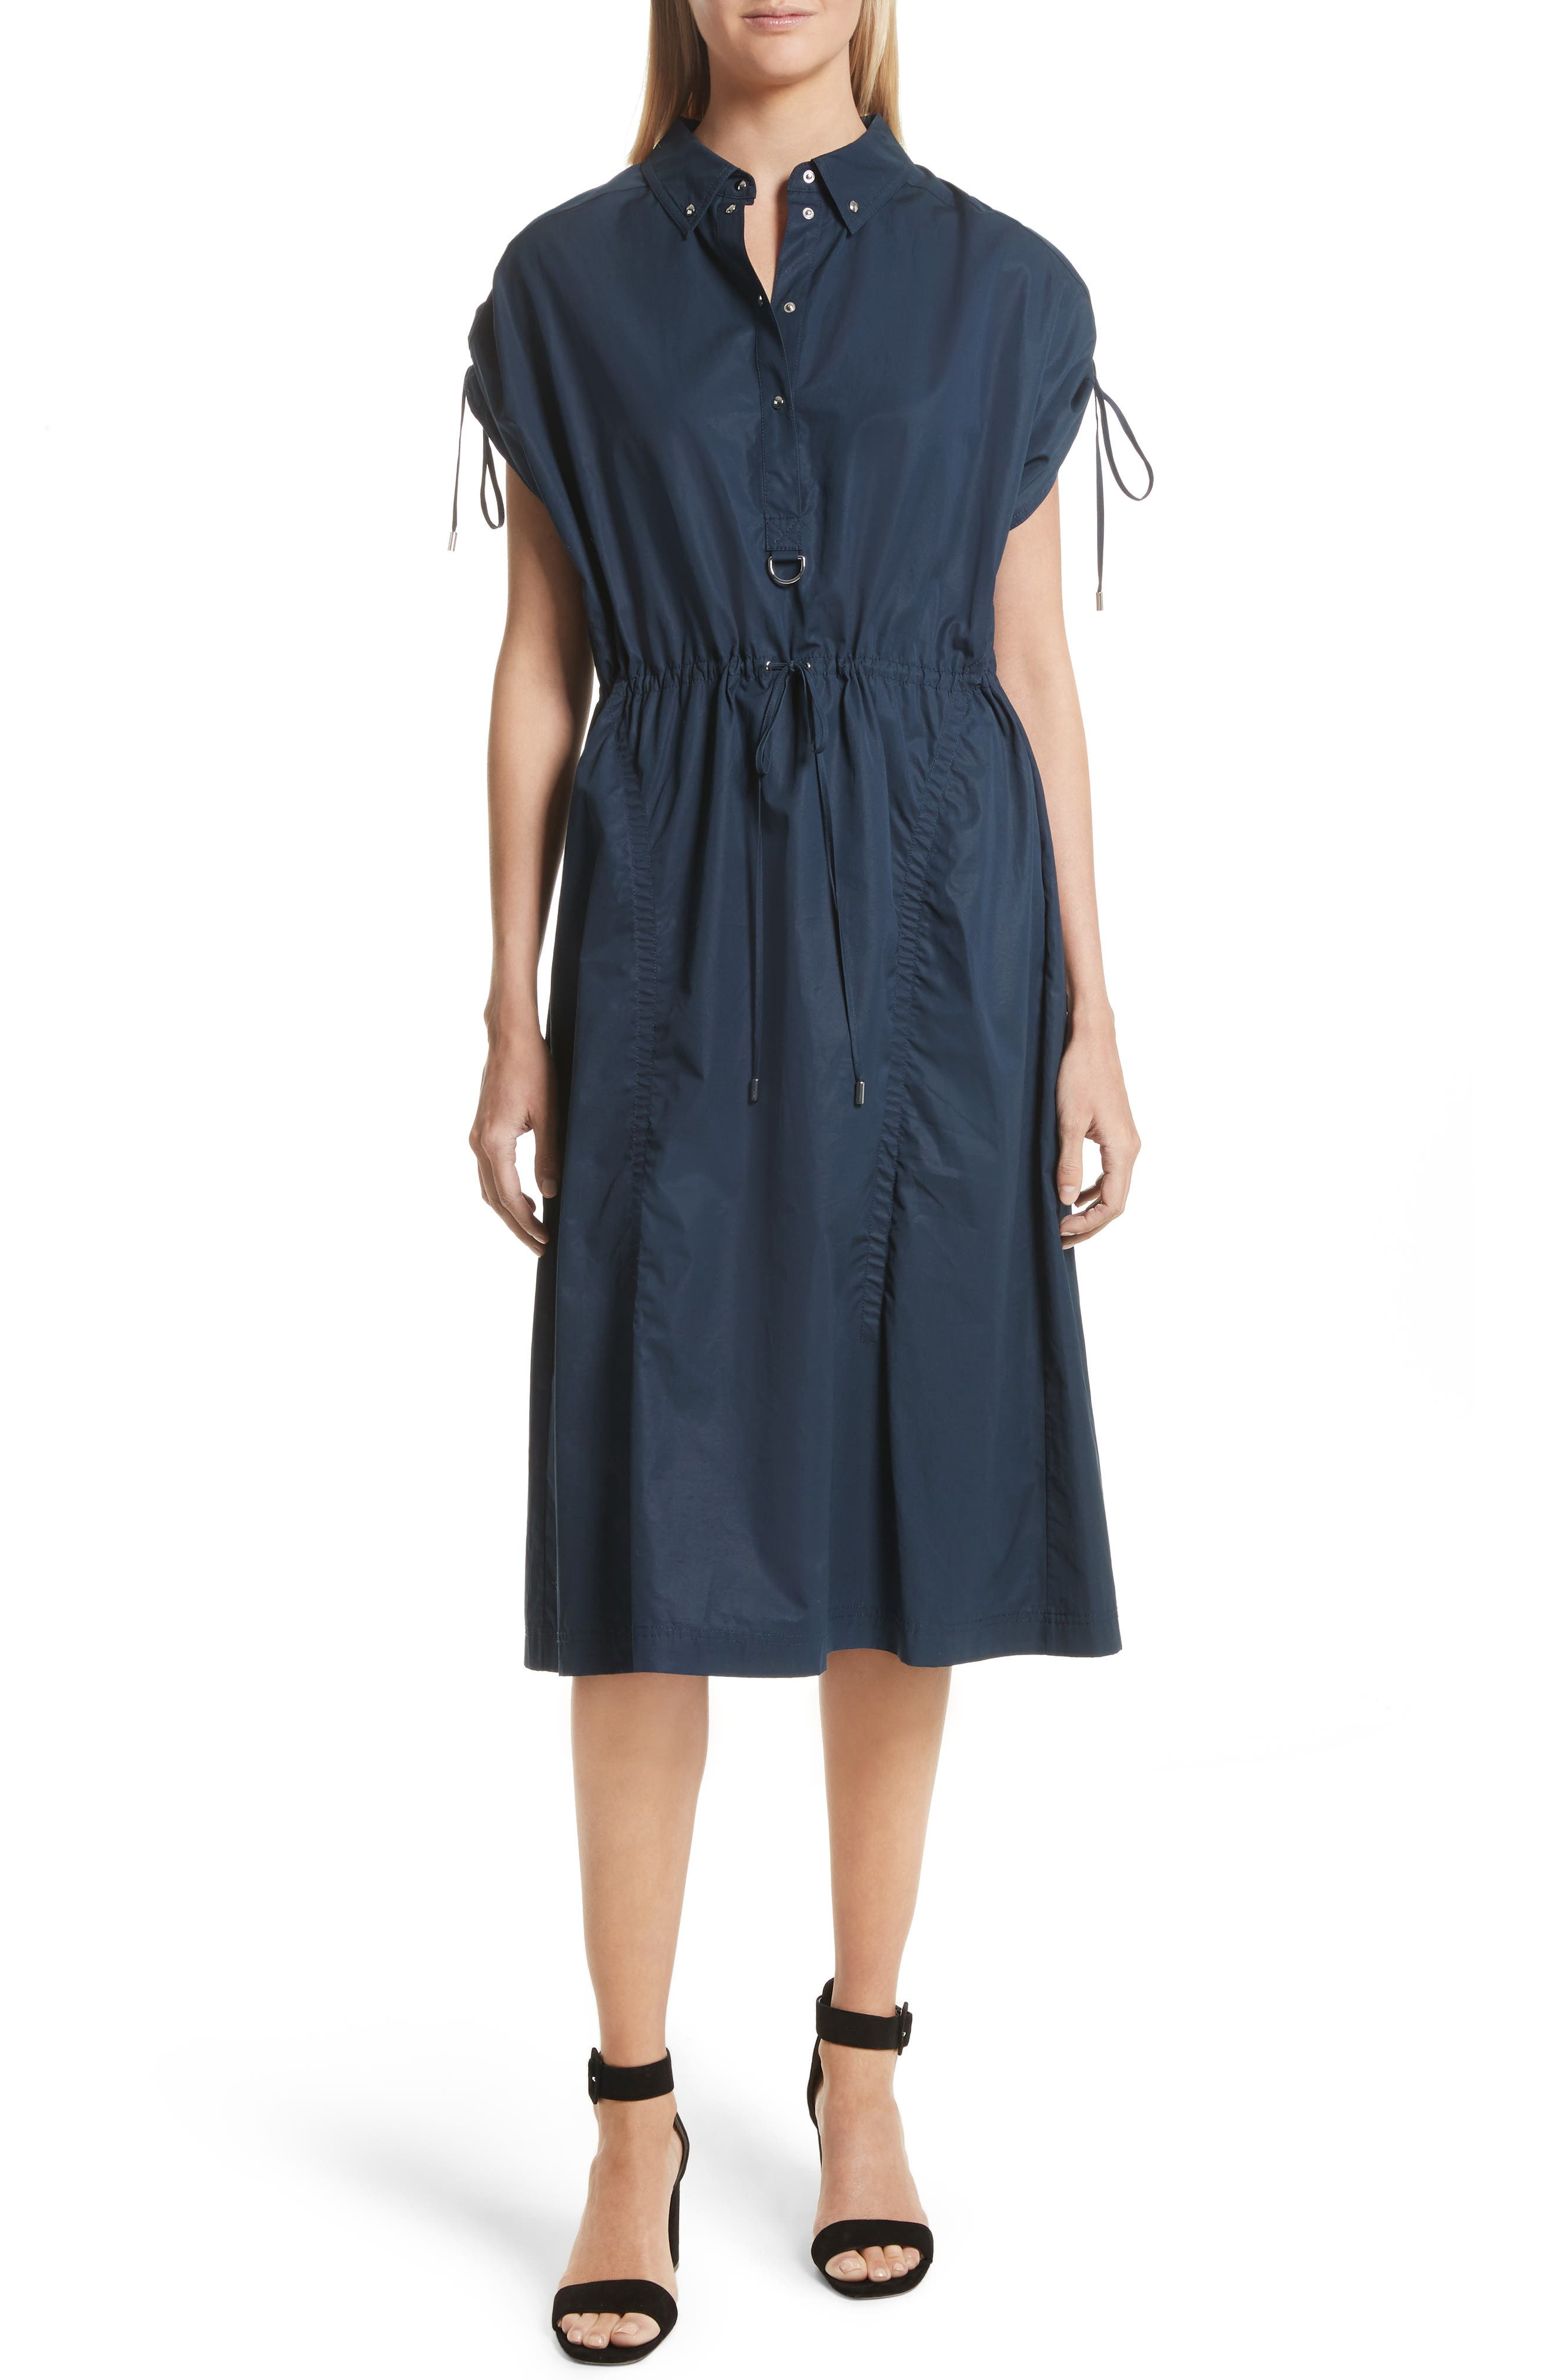 GREY Jason Wu Cotton Poplin Dress